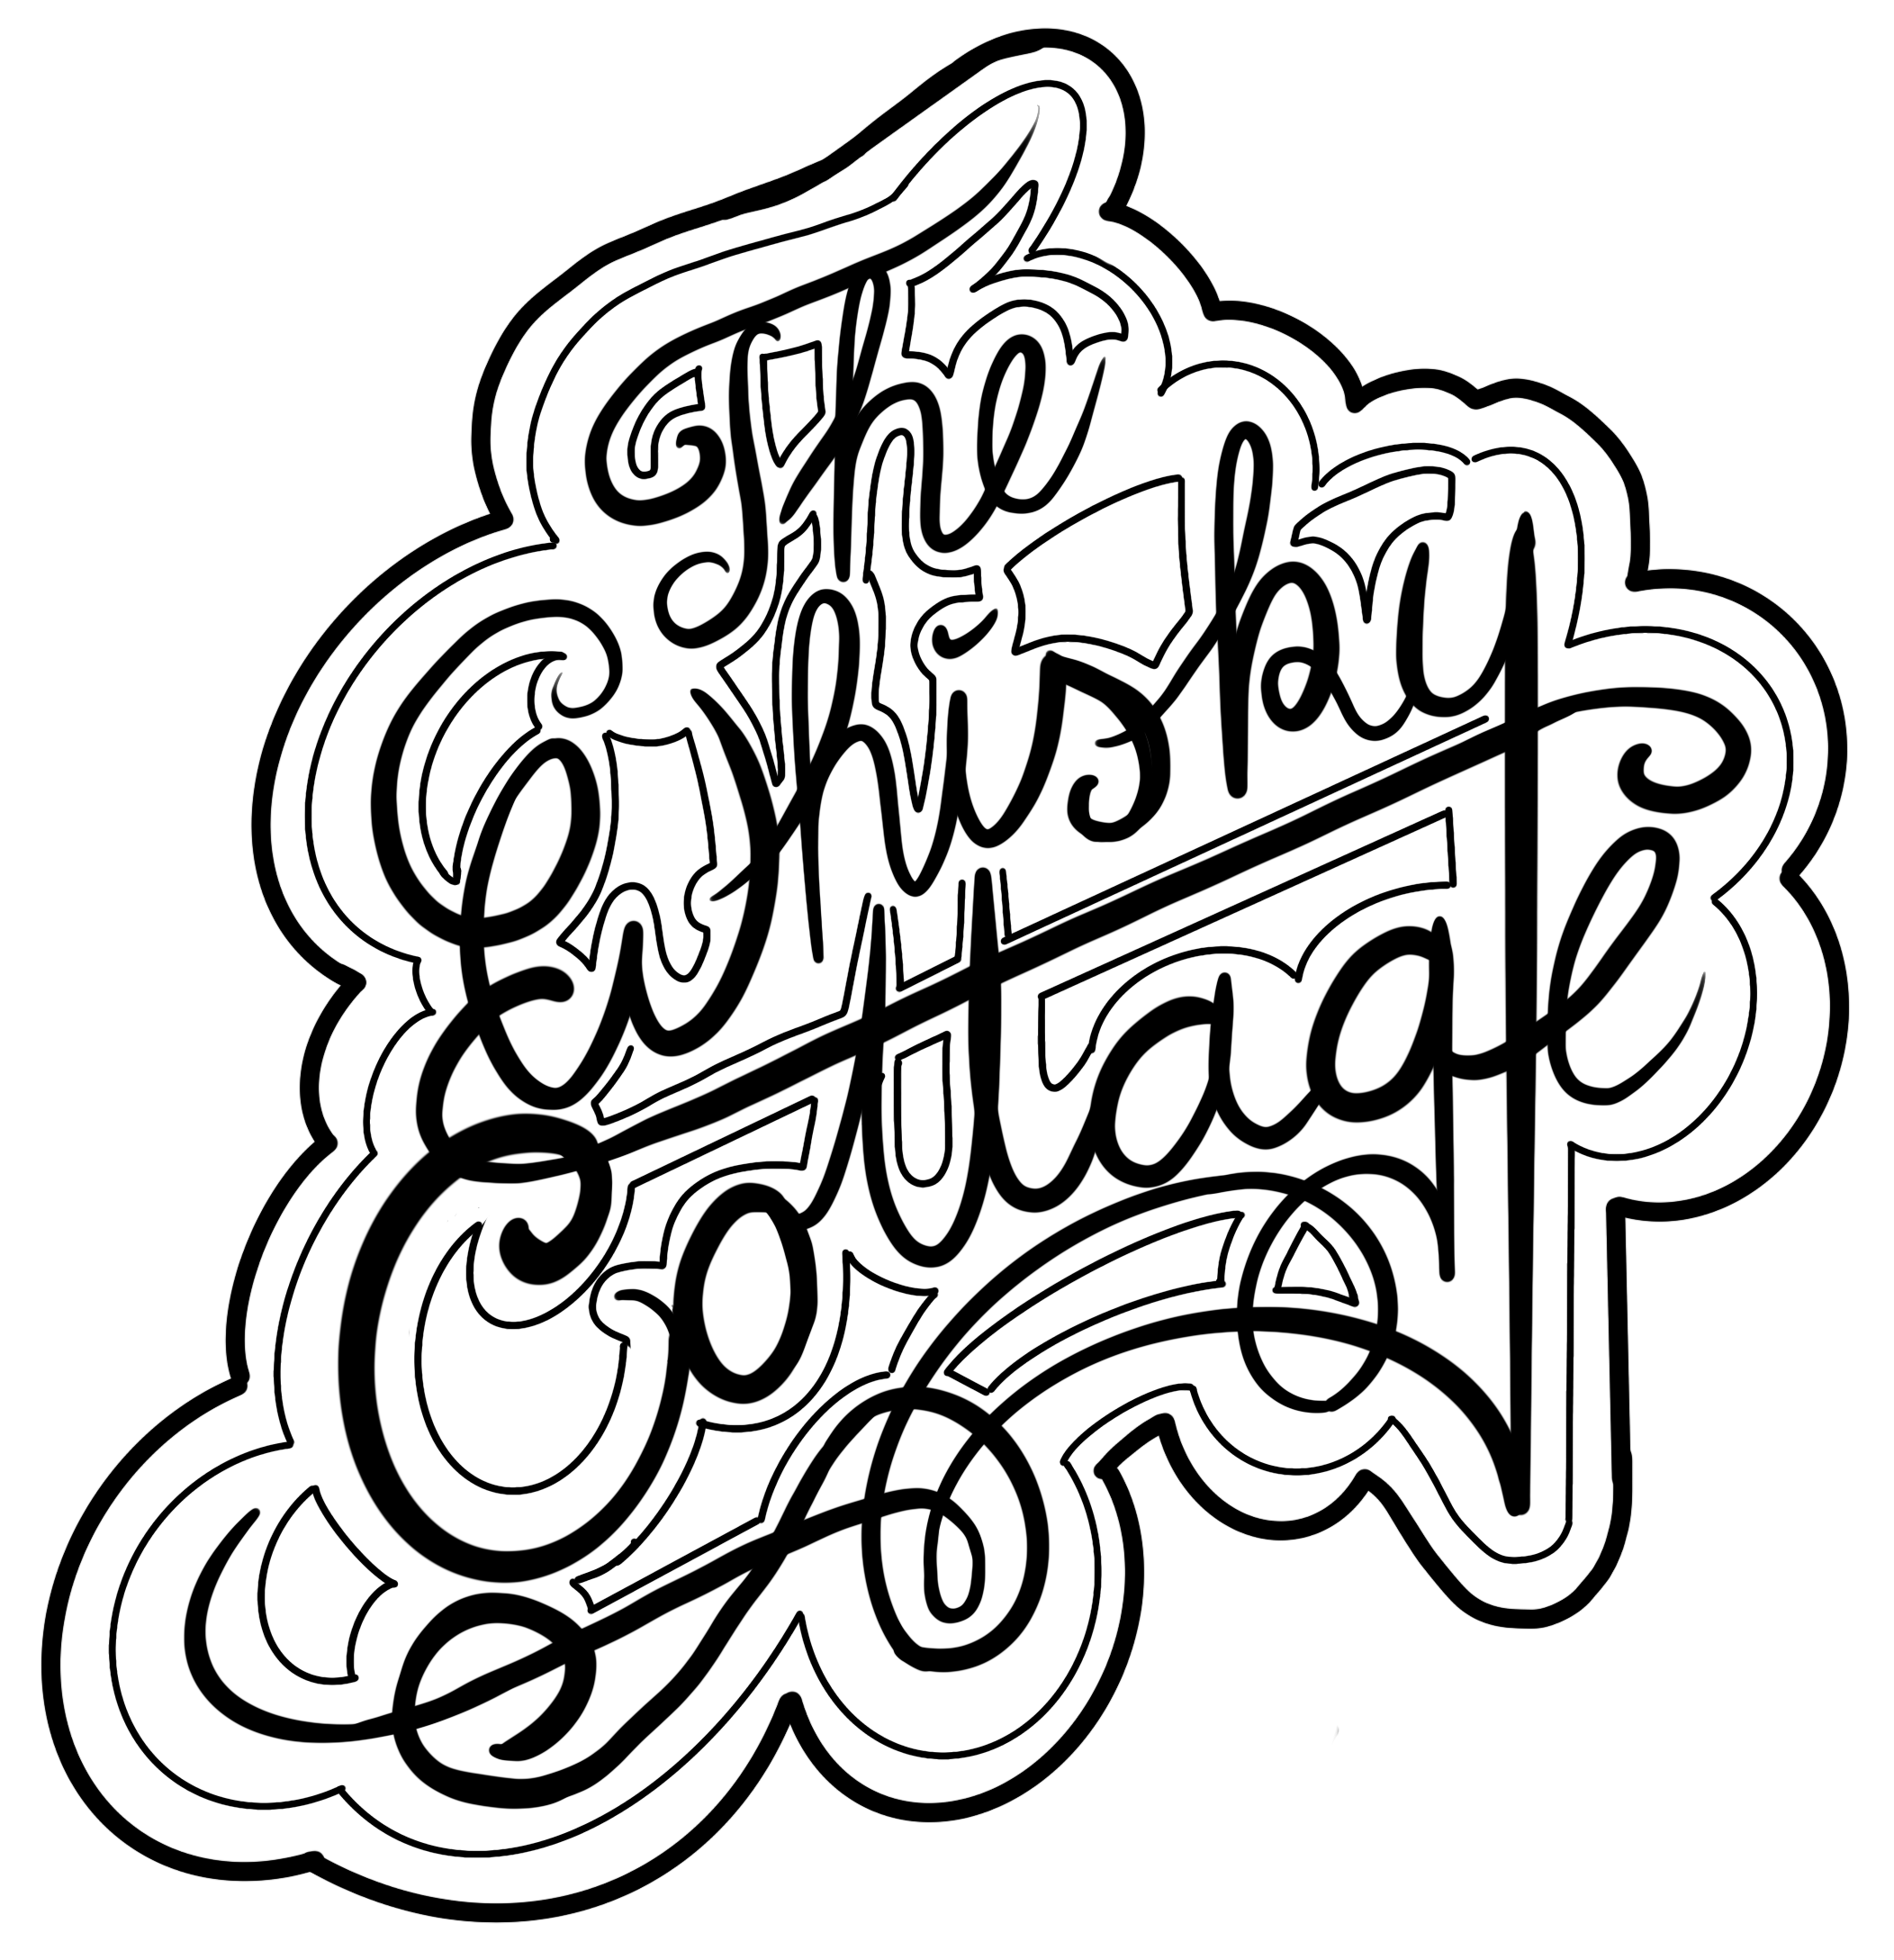 The Whisky Cottage